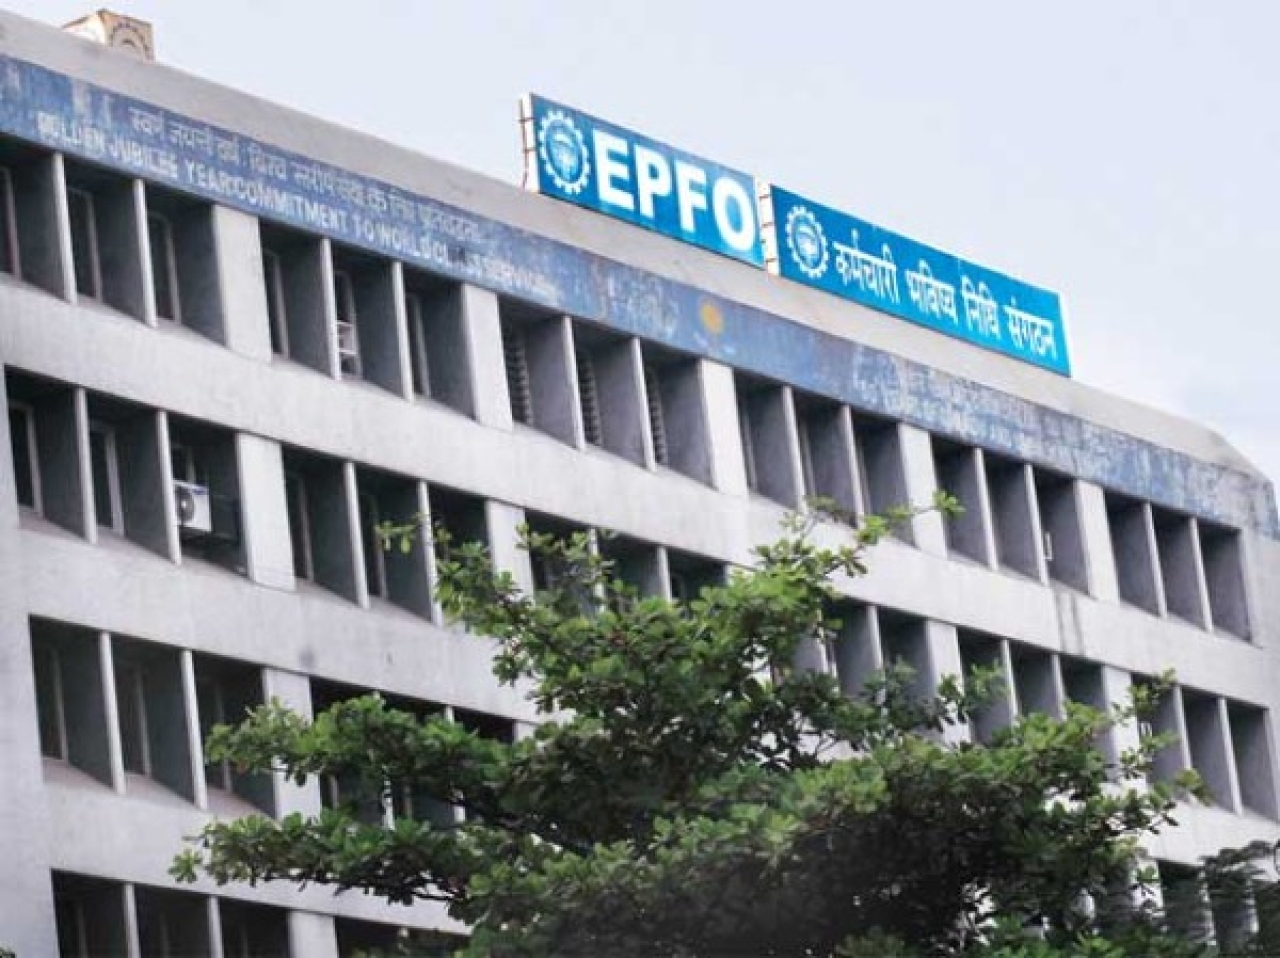 Employees' Provident Fund Organisation or EPFO